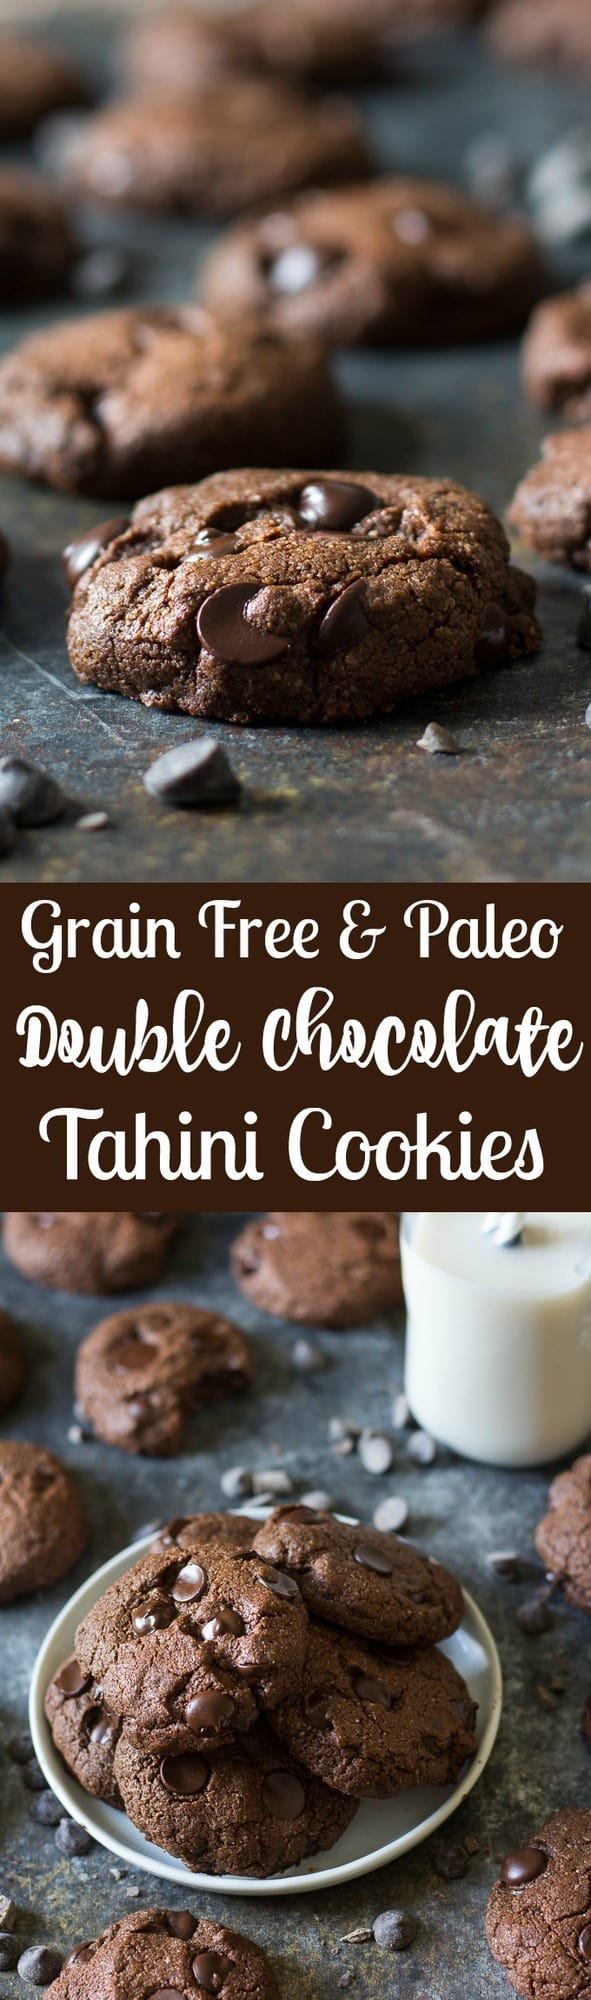 grain-free-and-paleo-double-chocolate-tahini-cookies